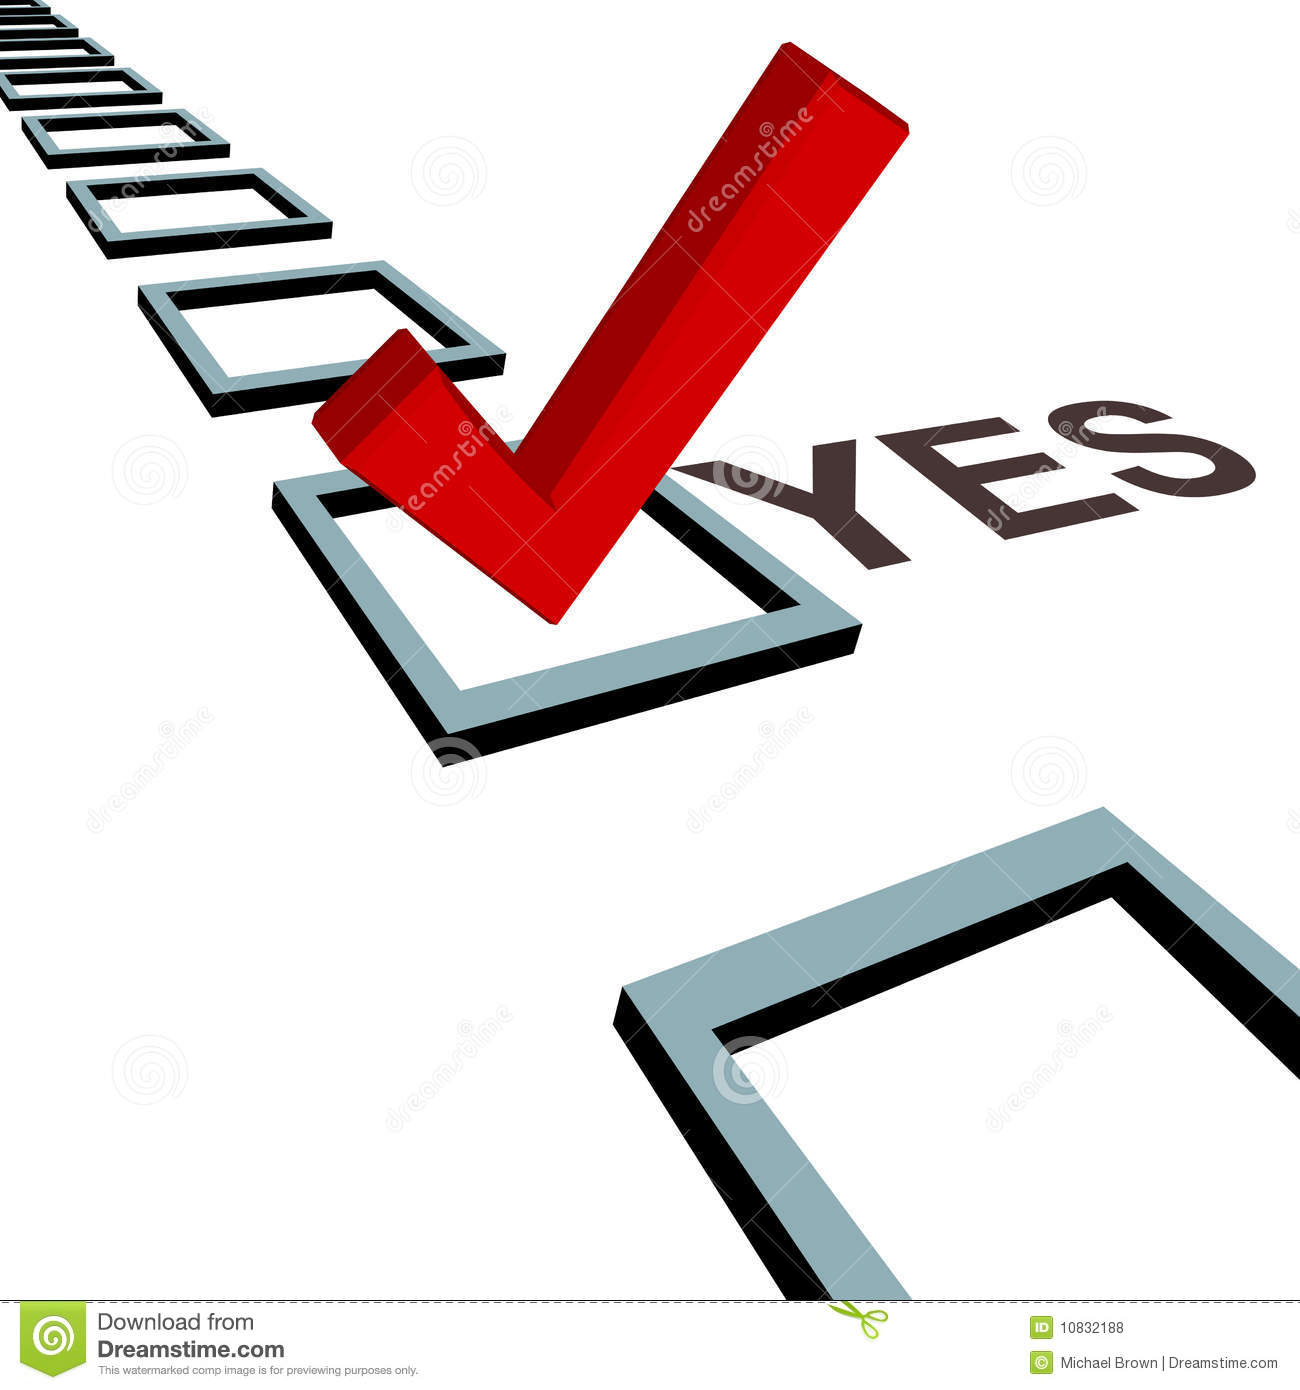 free clipart vote yes - photo #16